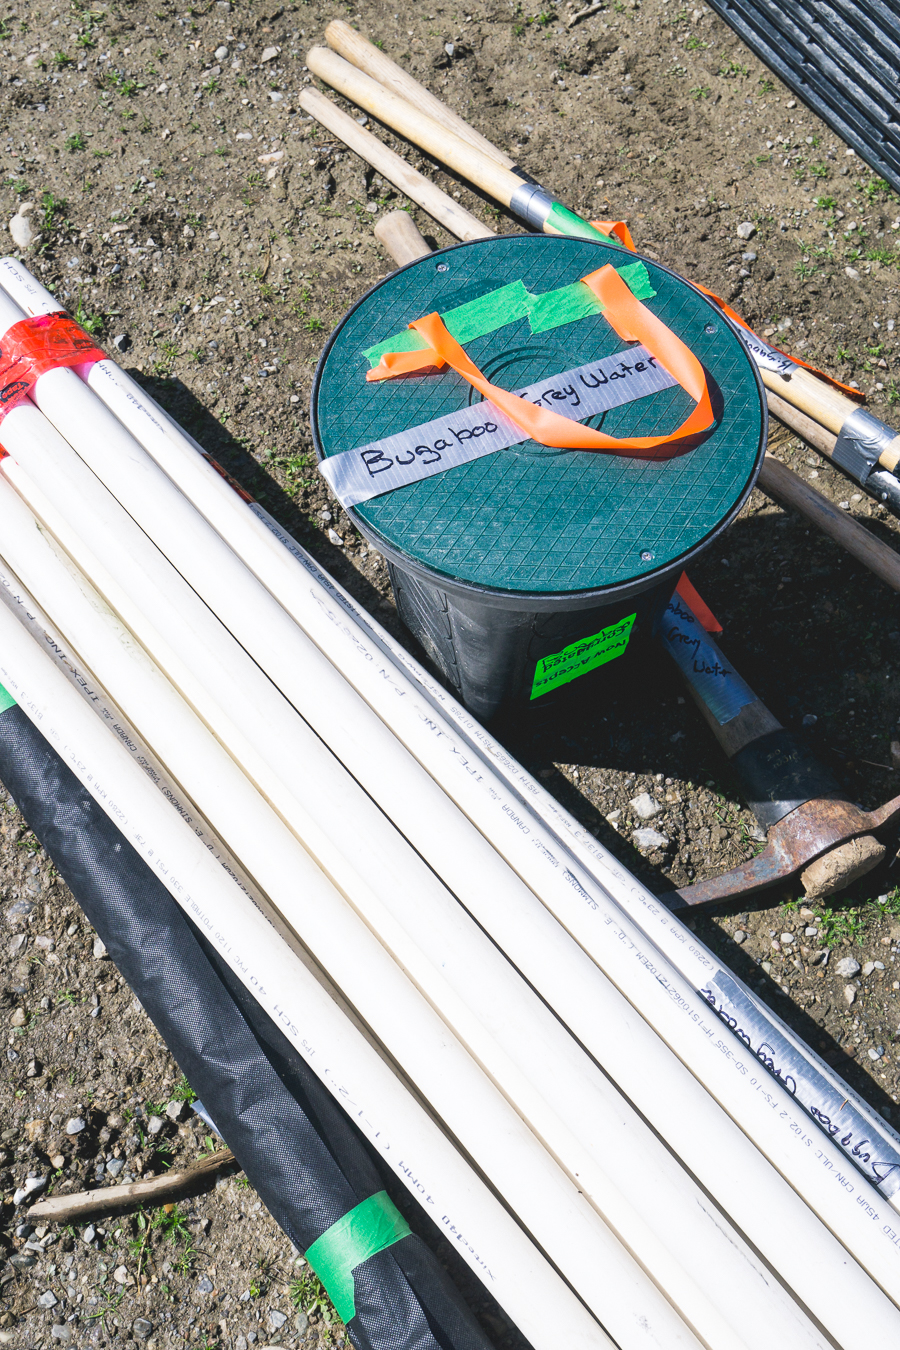 Careful planning beforehand ensures all materials and tools are prepped and ready when hut service days arrive.